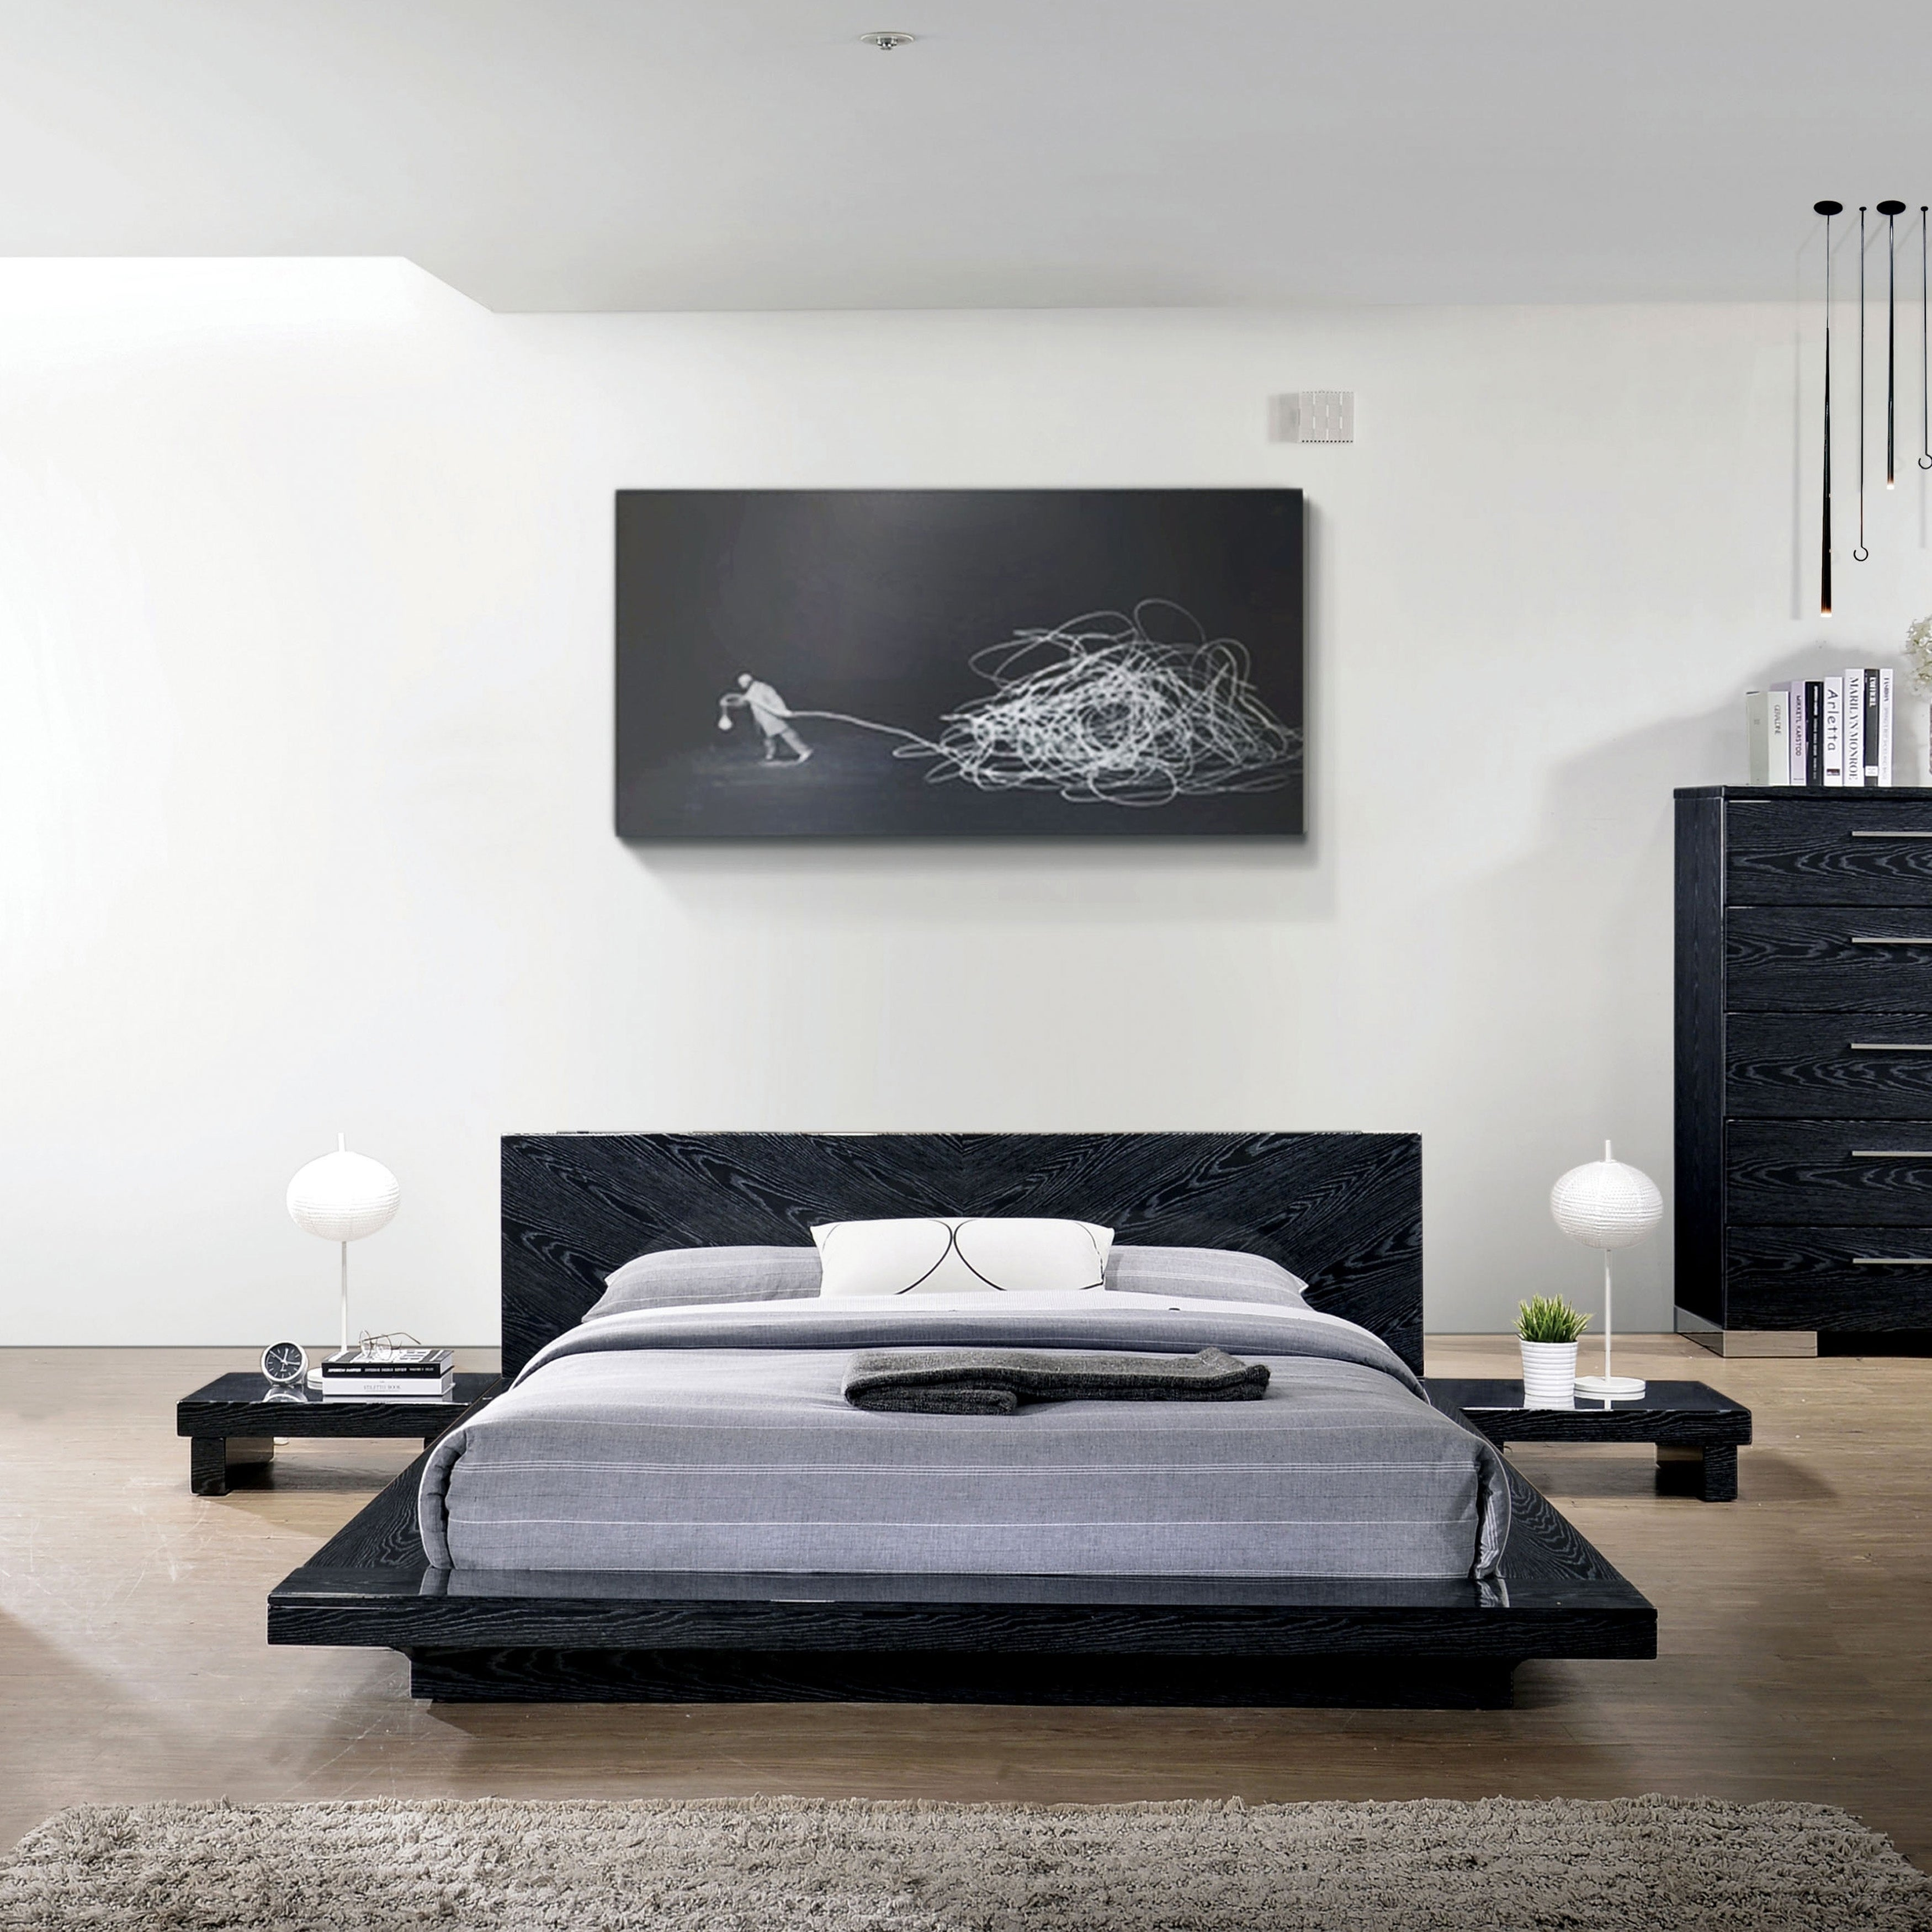 Furniture Of America Roso Contemporary Solid Wood Platform Bed Overstock 25324577 White California King